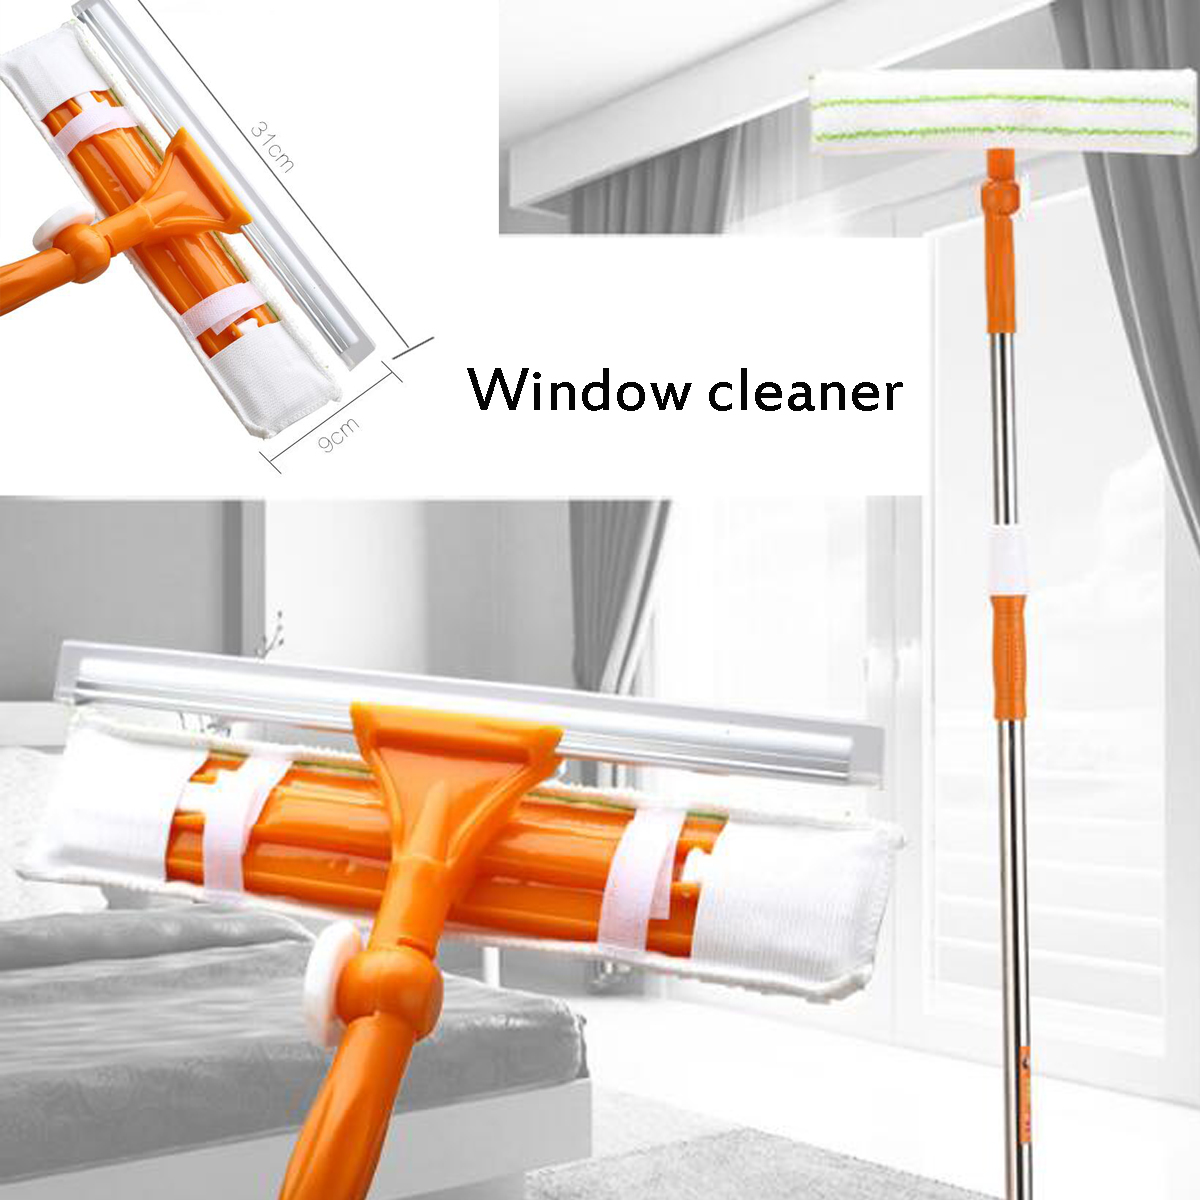 5 in 1 Multi-function Flat Mop Hands-Free Washable Mop Home Cleaning Tool